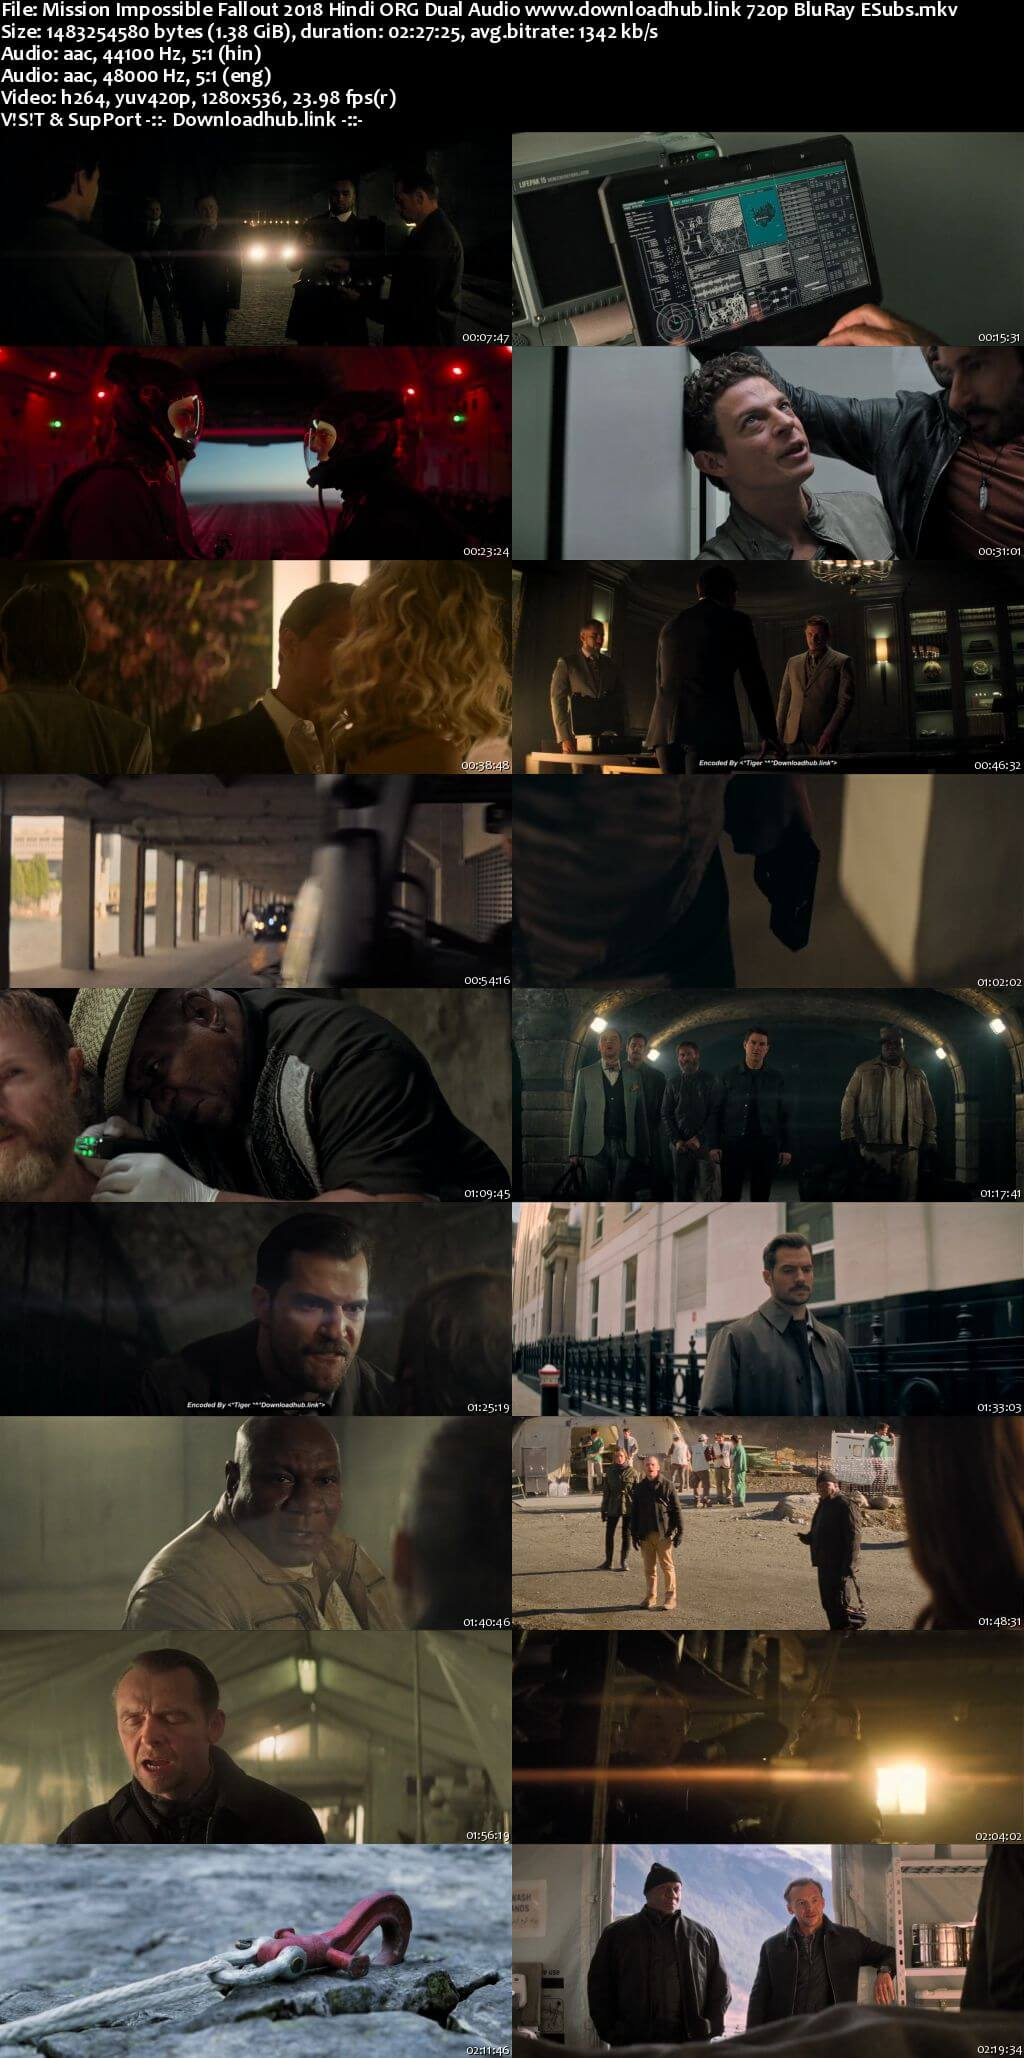 Mission Impossible Fallout 2018 Hindi ORG Dual Audio 720p BluRay ESubs